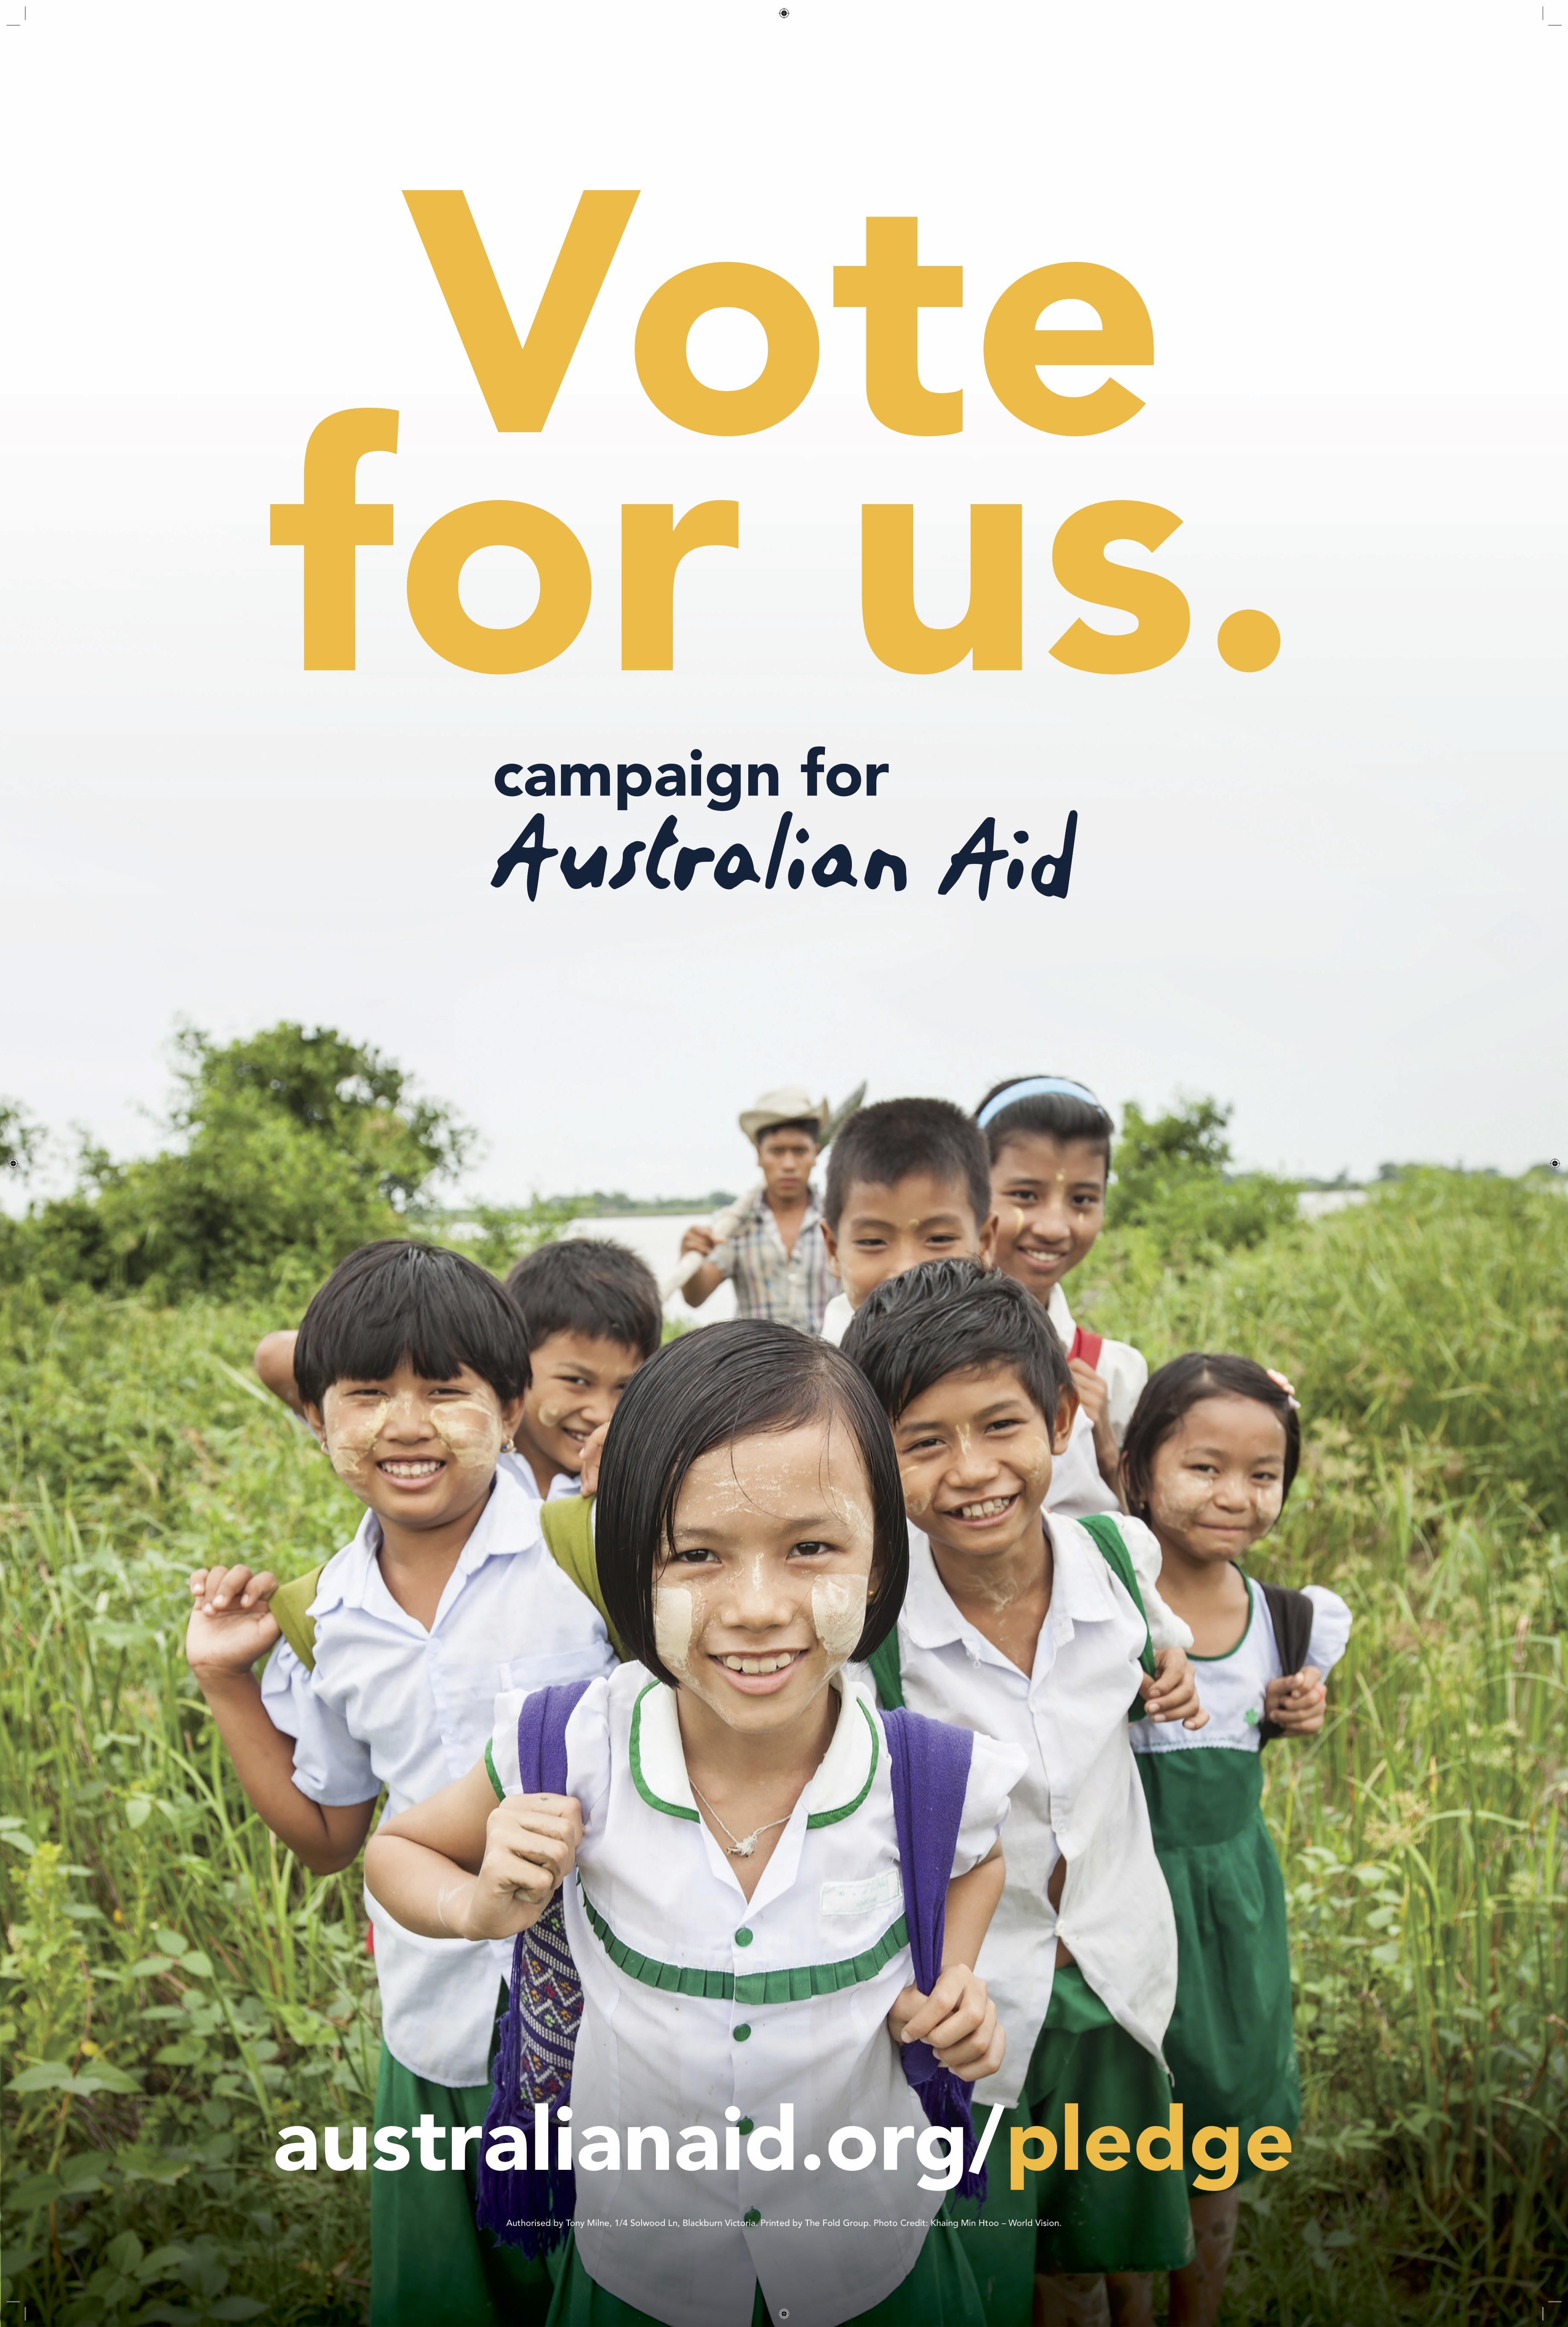 Campaign for Australian Aid election fence sign